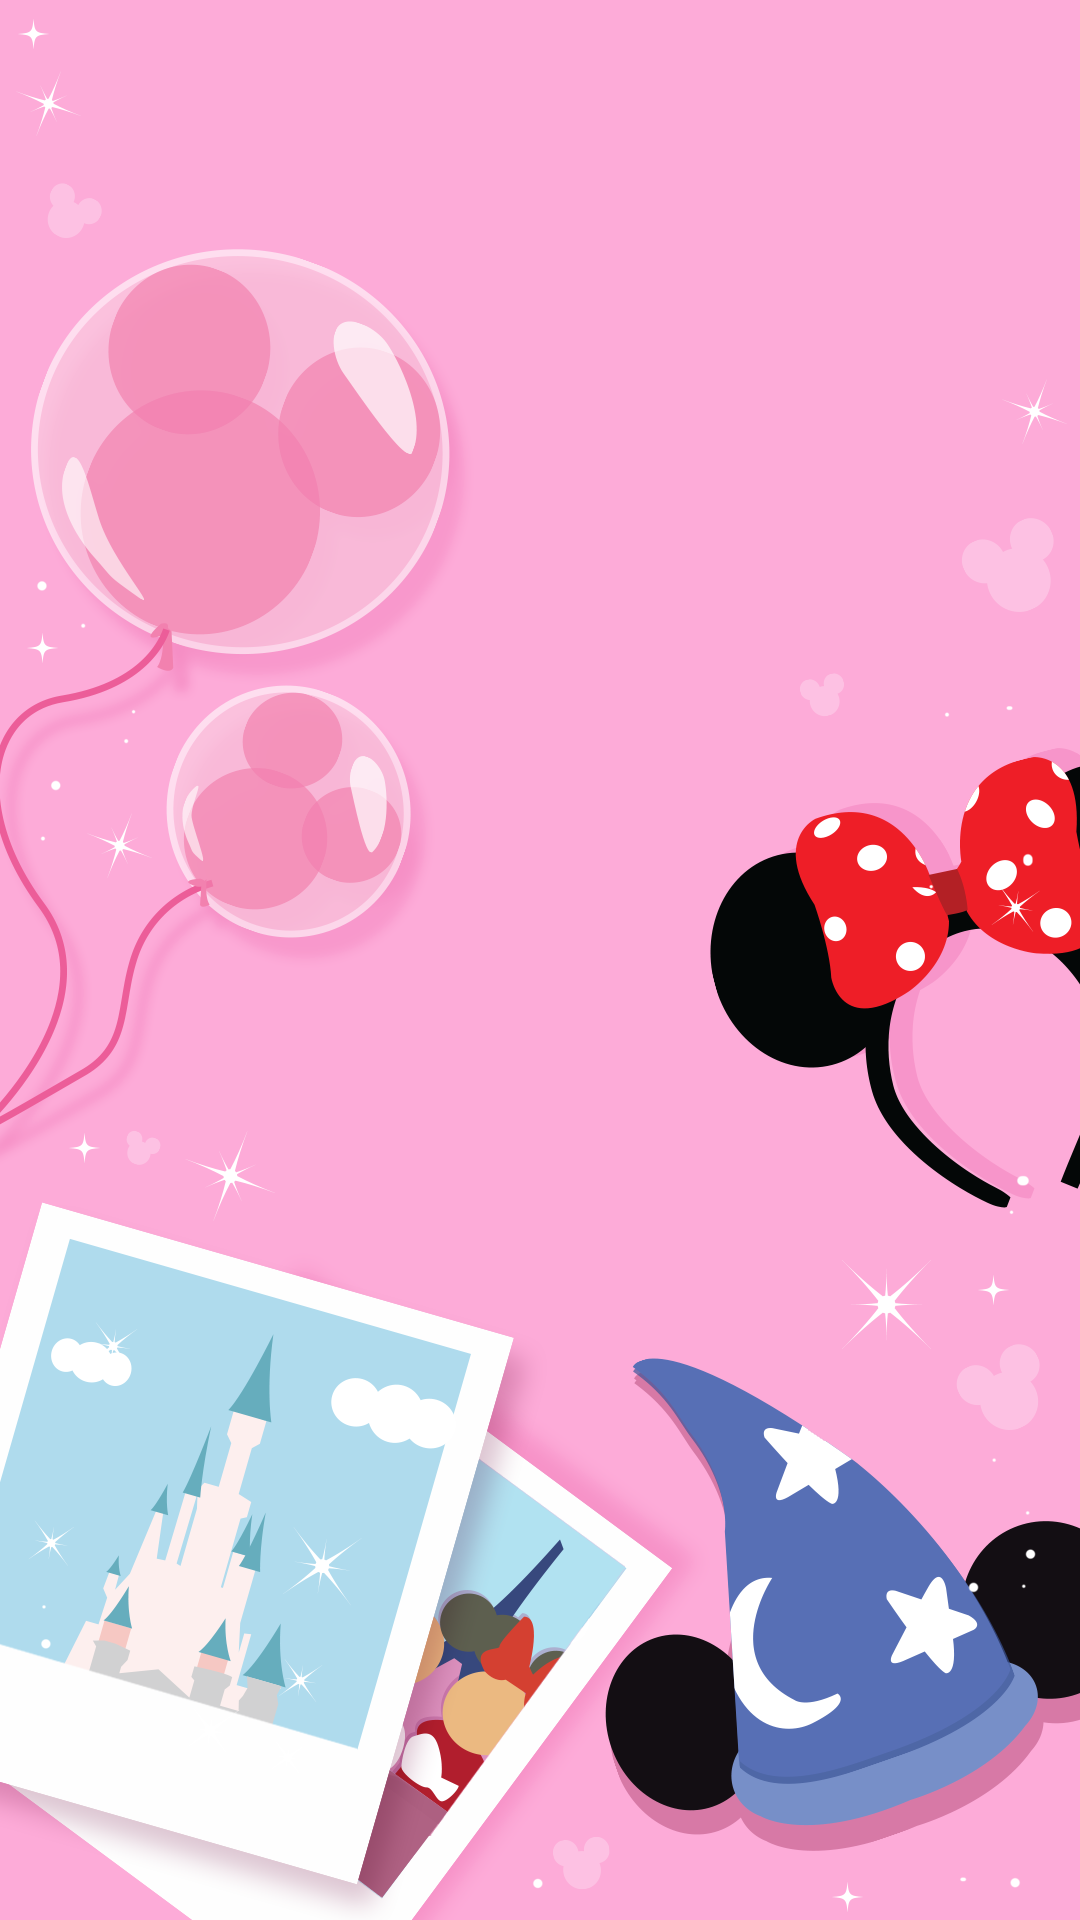 Disney Girl Disneyland Smartphone Ipad Wallpaper Disney